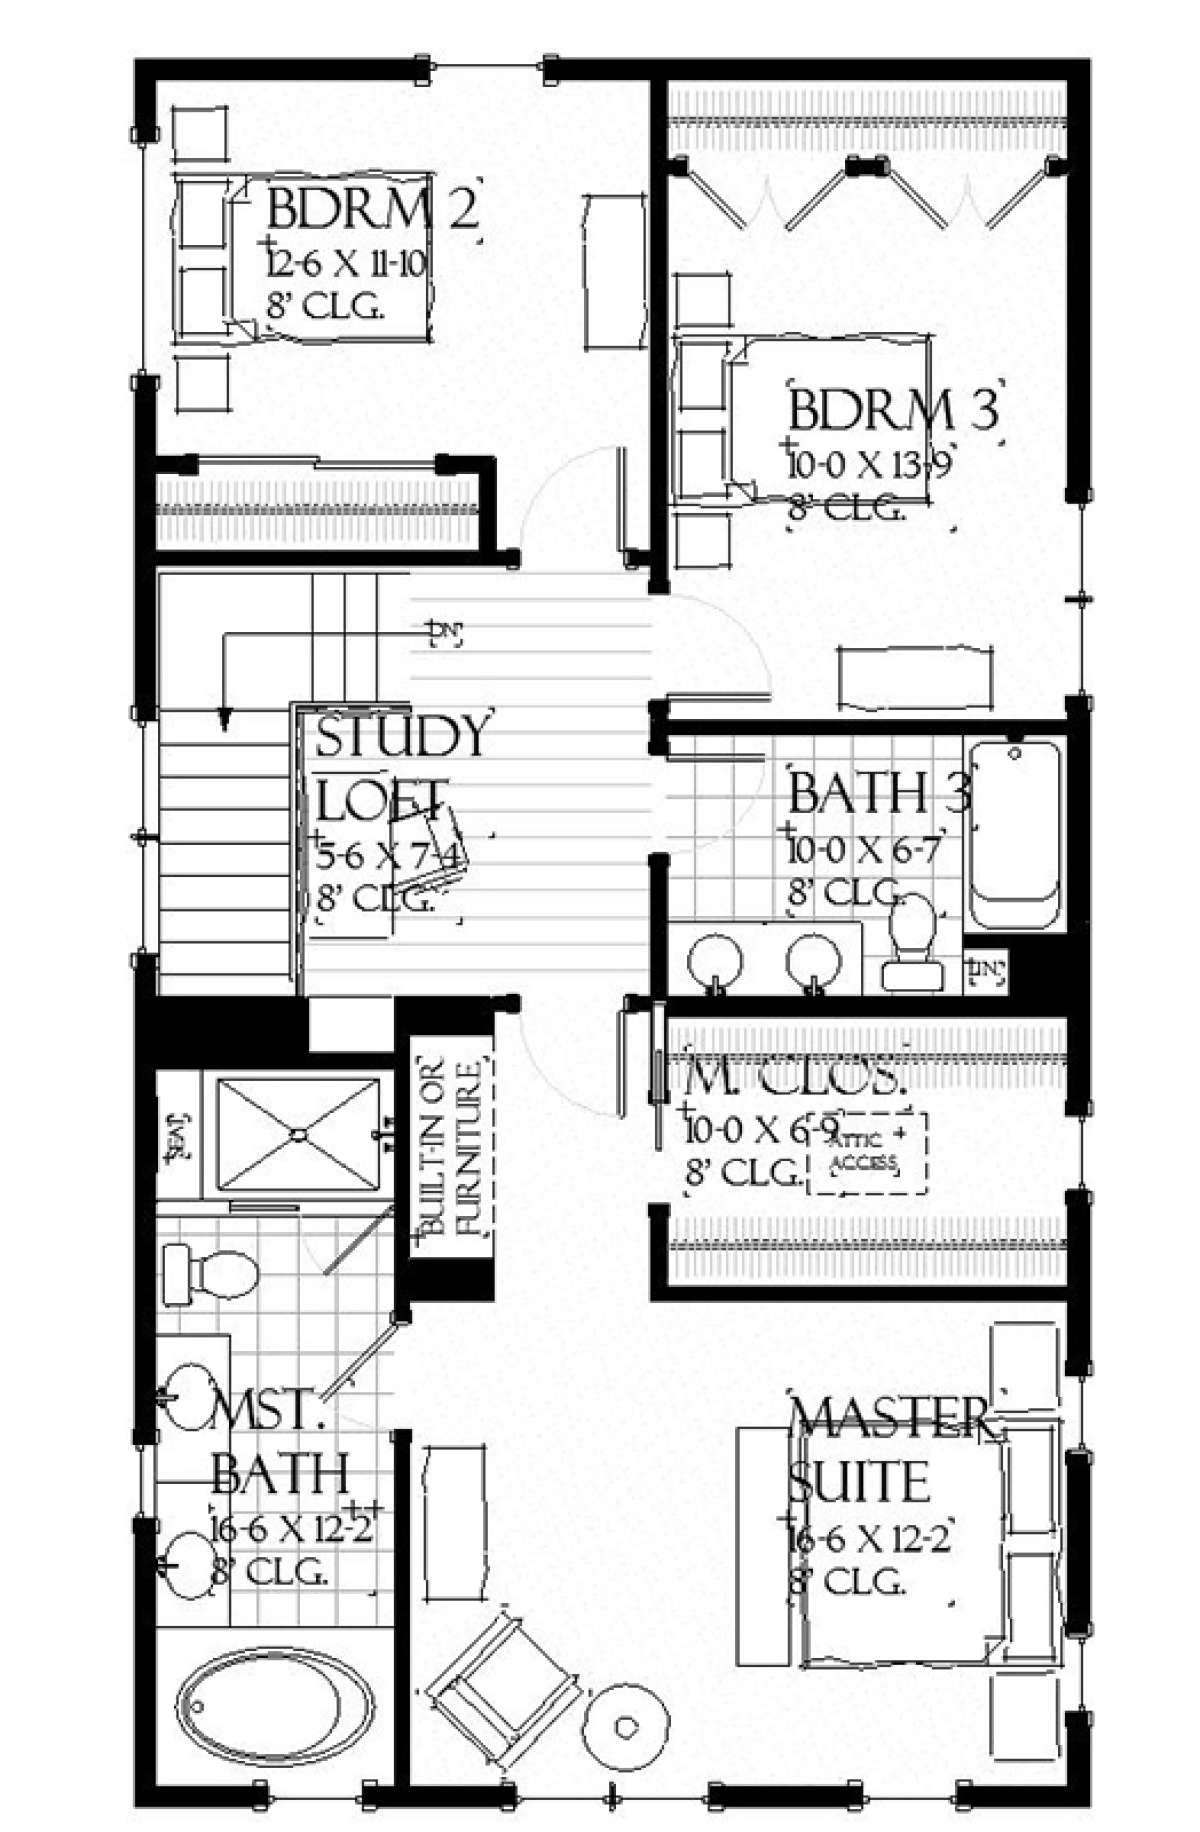 House Plan 1637 00130 Country Plan 2 063 Square Feet 3 Bedrooms 2 5 Bathrooms In 2020 Narrow Lot House Plans House Floor Design Small Floor Plans